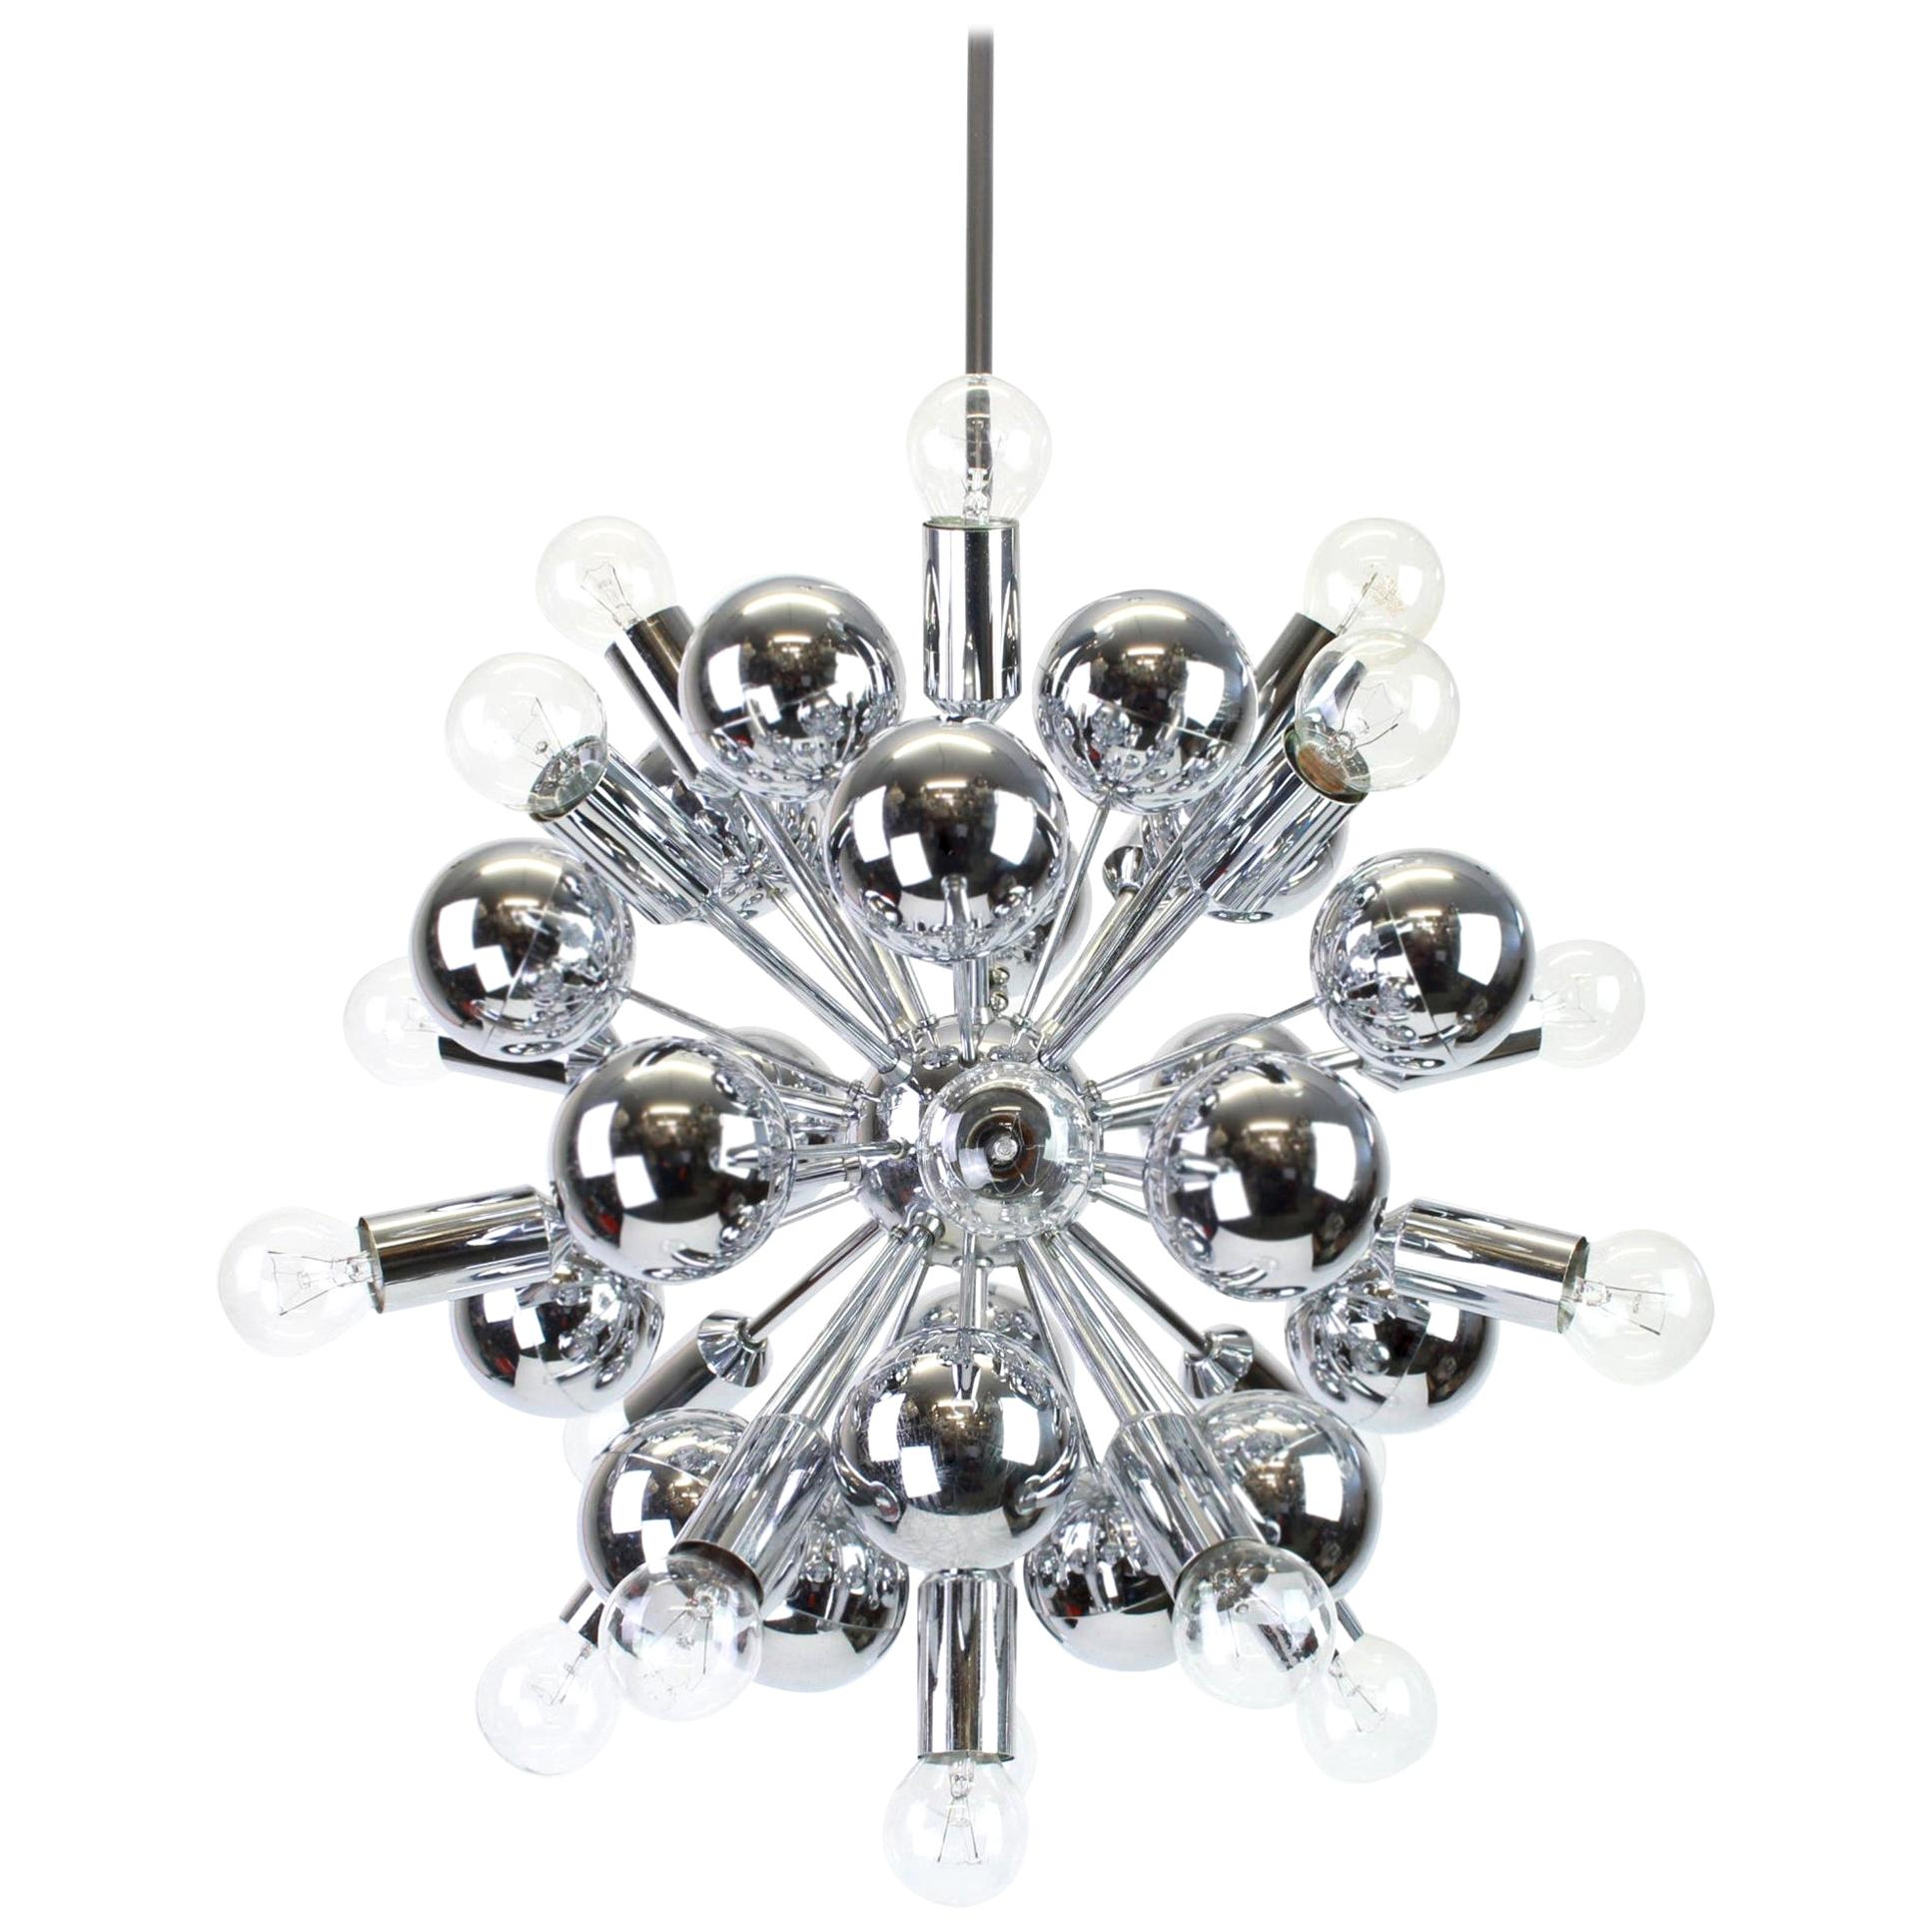 Large Chrome Space Age Sputnik Chandelier by Cosack, Germany, 1970s